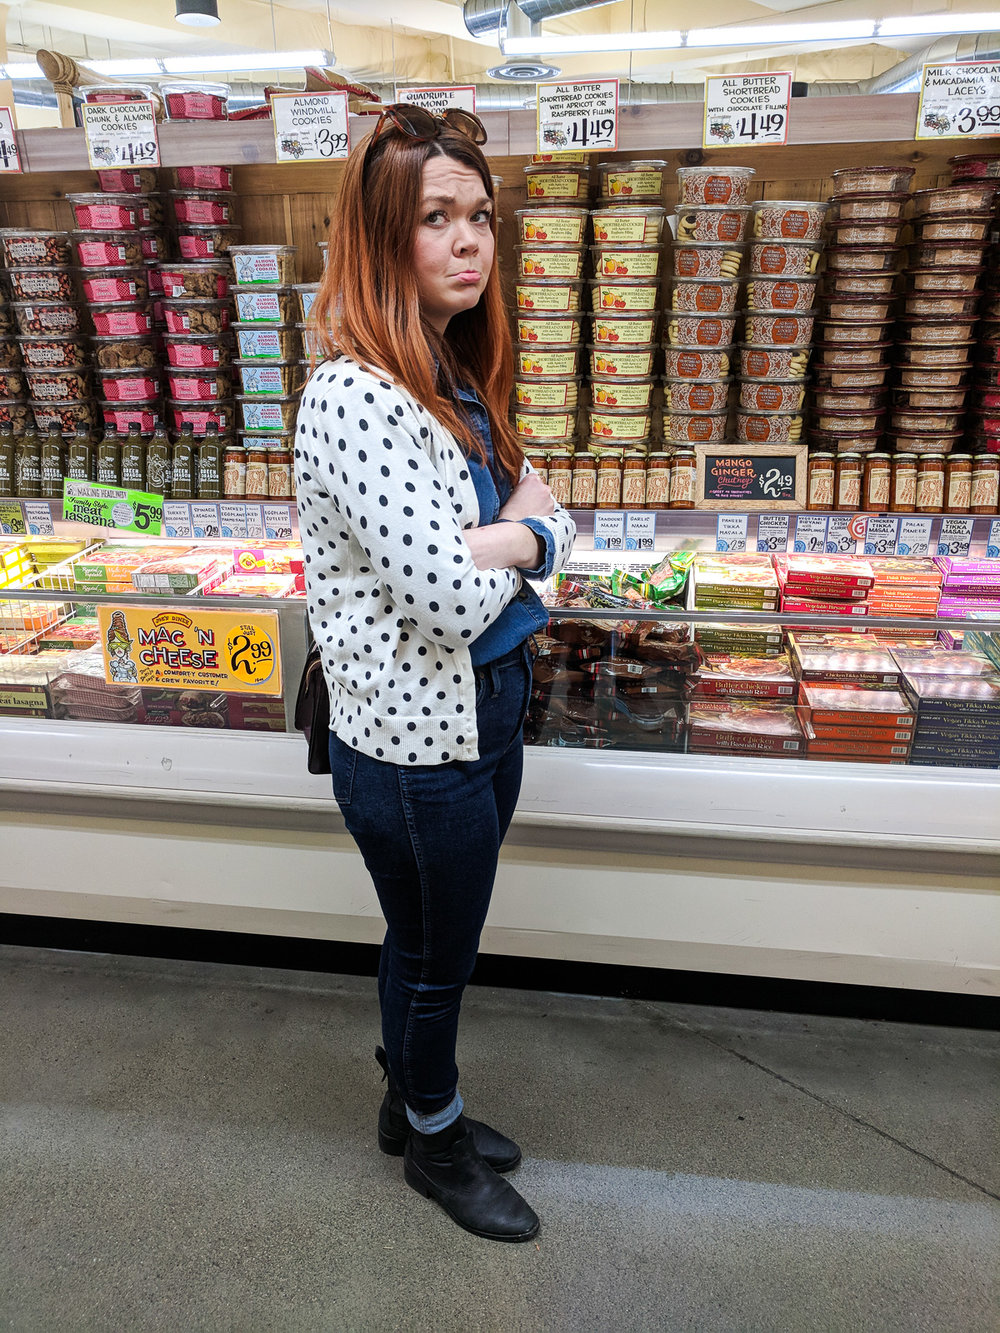 Trader Joes is a place of many emotions.